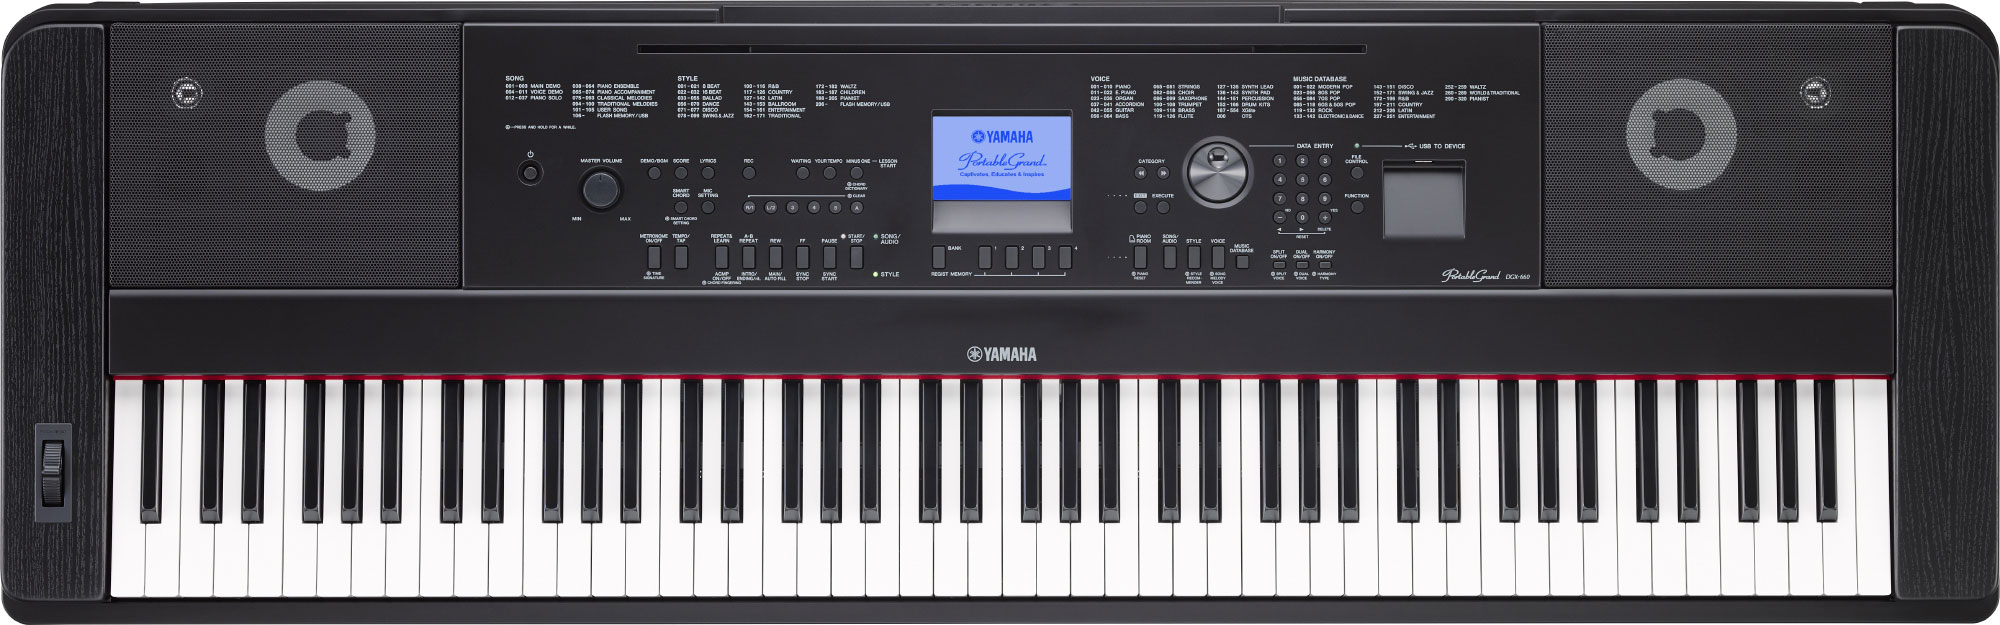 Dgx 660 Absolute Pianoabsolute Piano